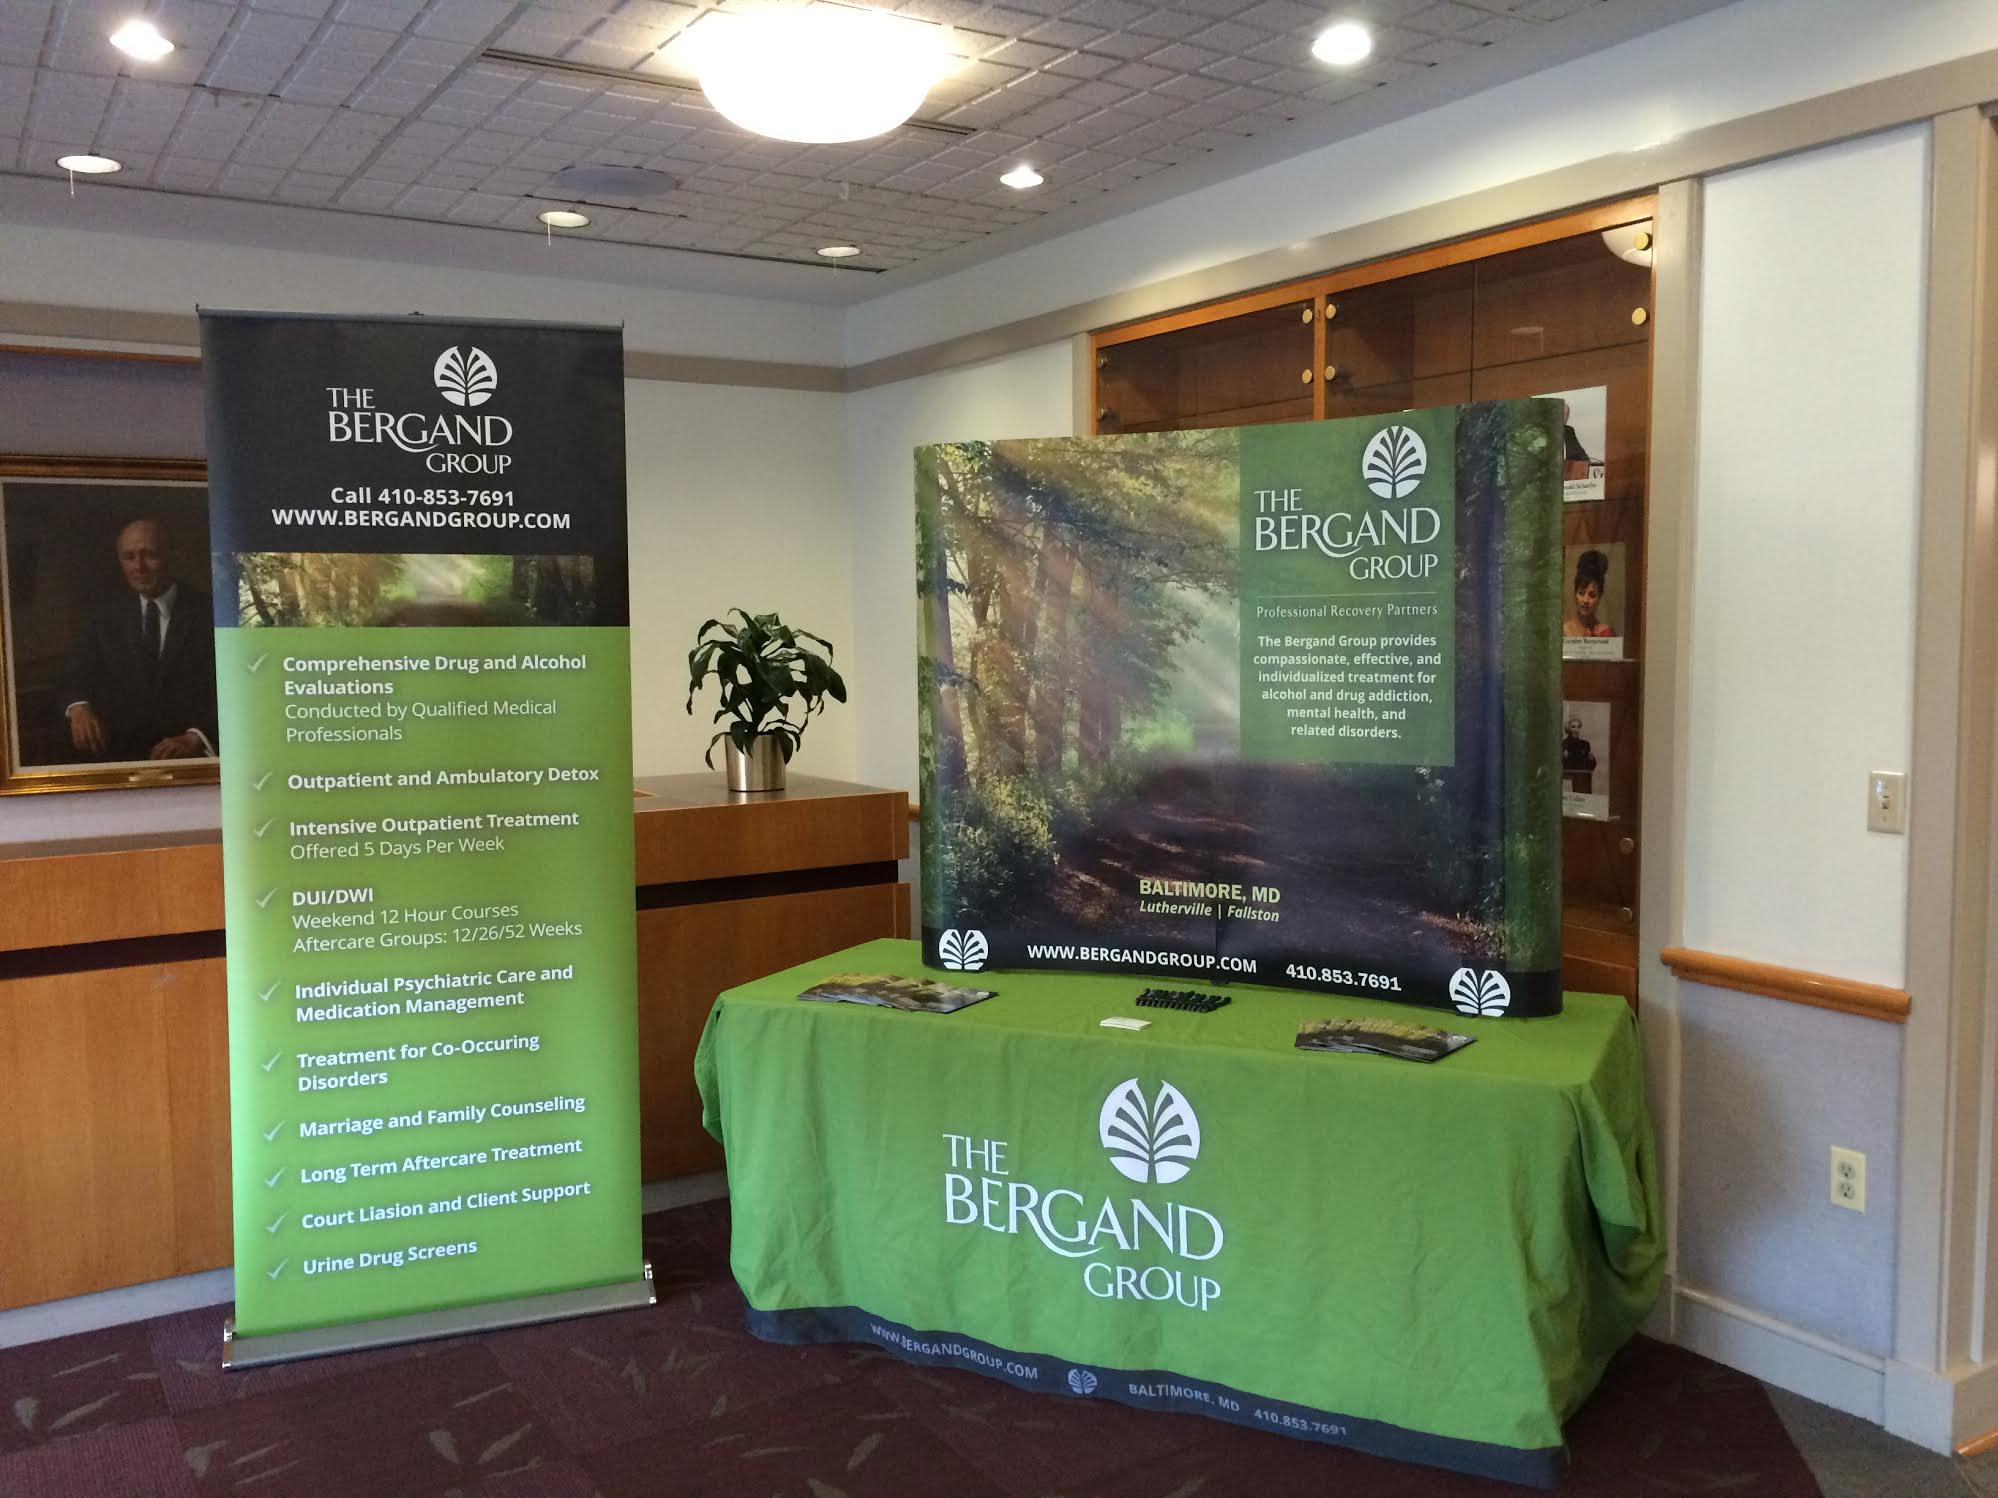 Bergand Group Education Events - The Bergand Group